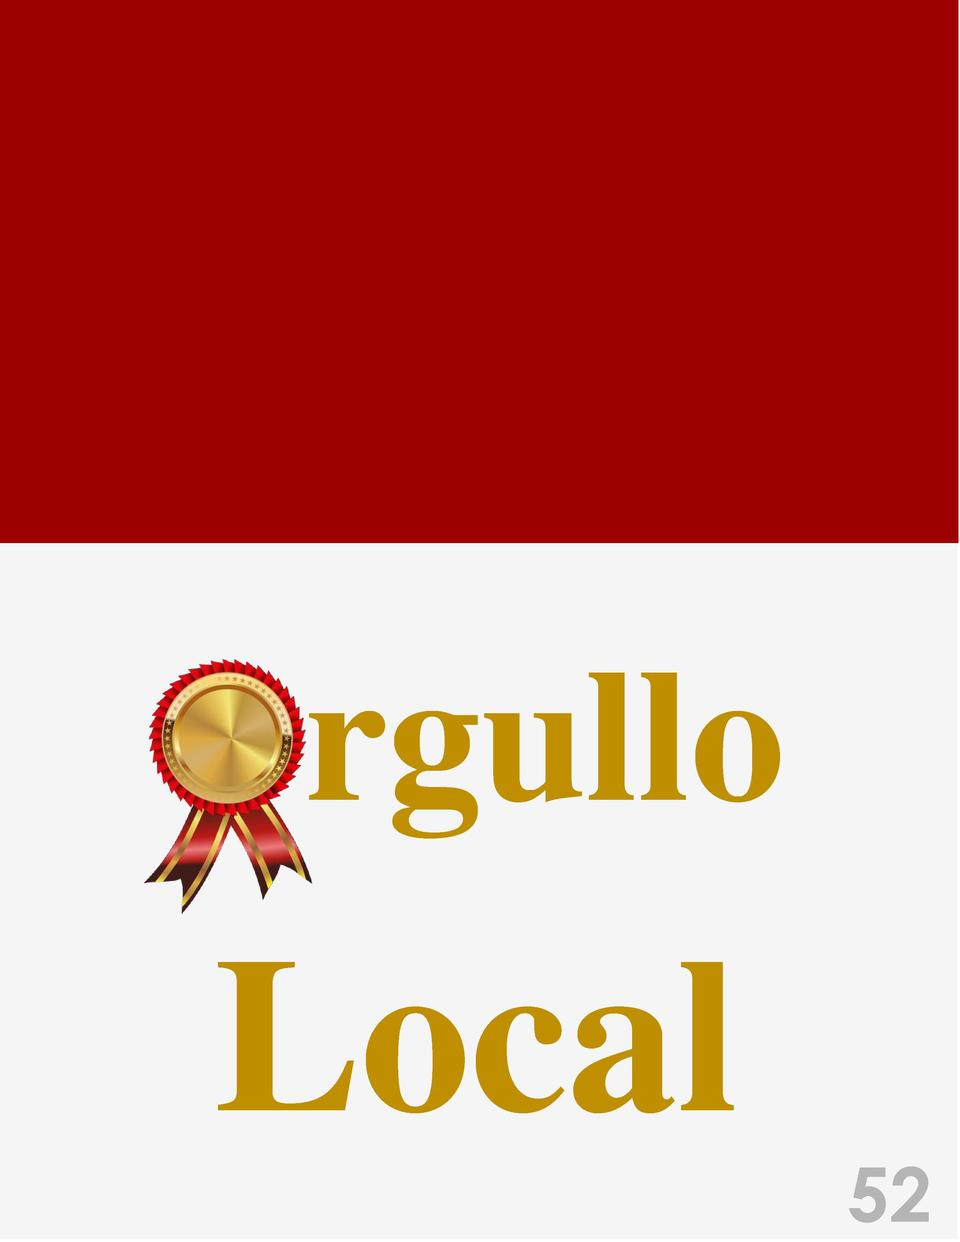 Orgullo  Local  52  52